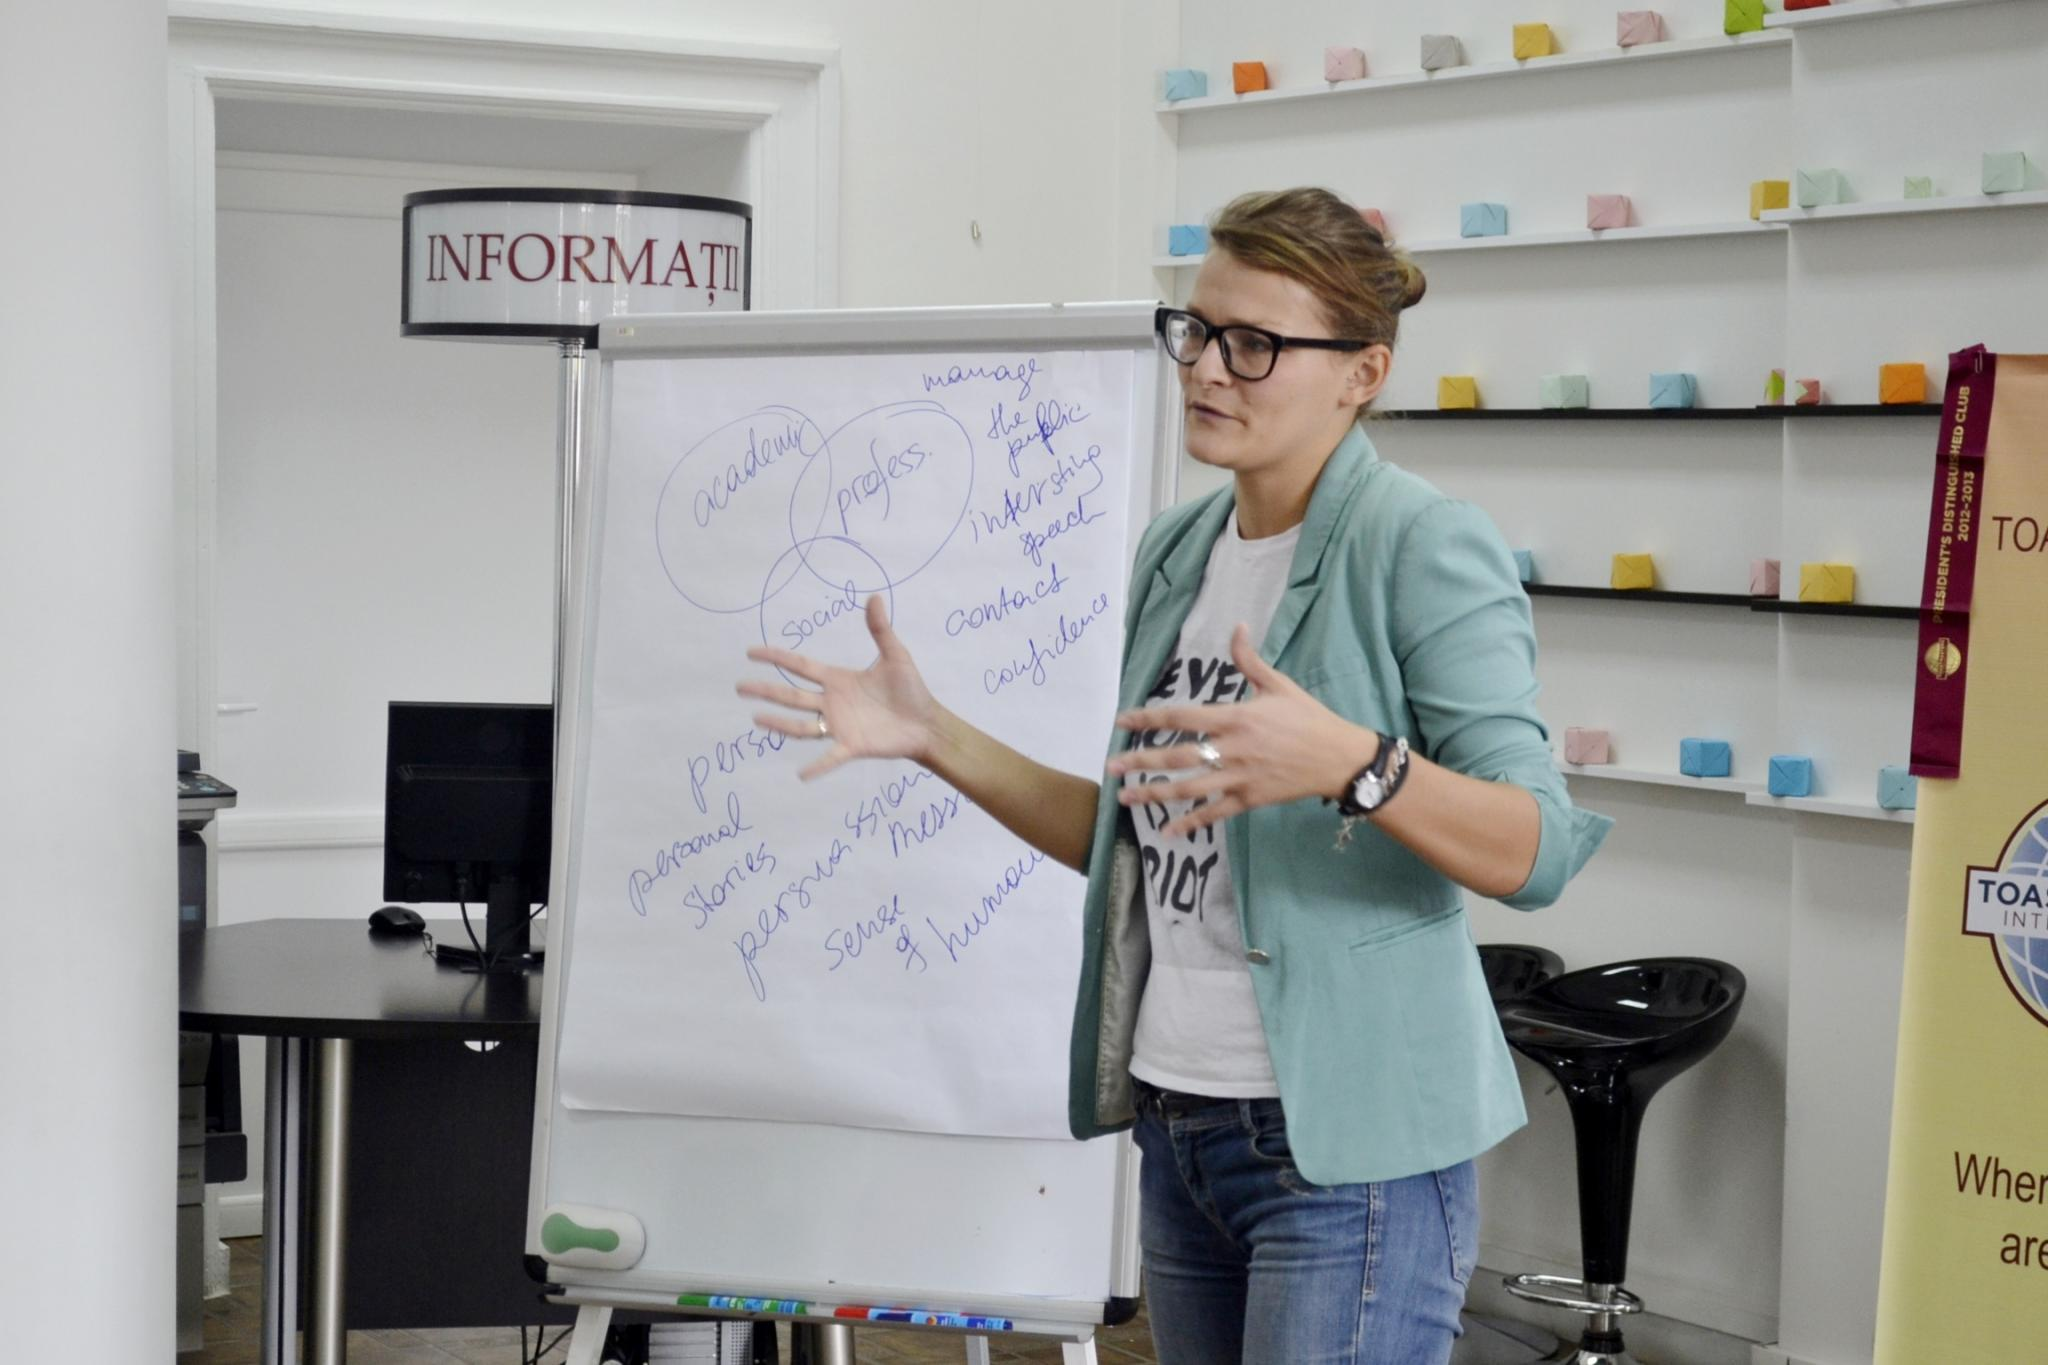 lady speaking standing next to a flip chart